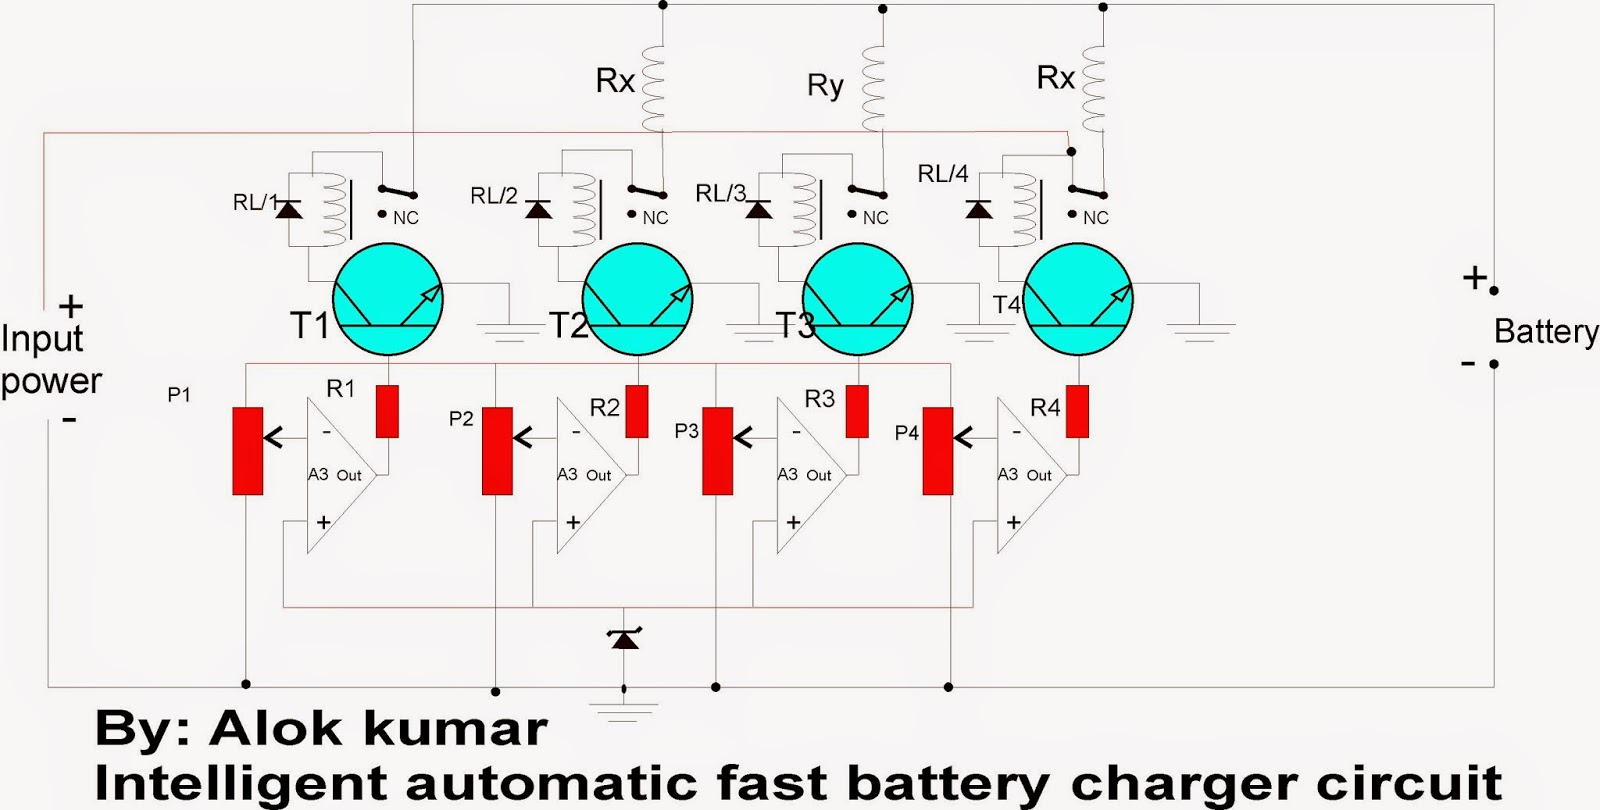 Car battery charger diagram auto hobby fully automatic battery charger circuit using lm311 electronic circuits transformerless power supply led drivers swarovskicordoba Images